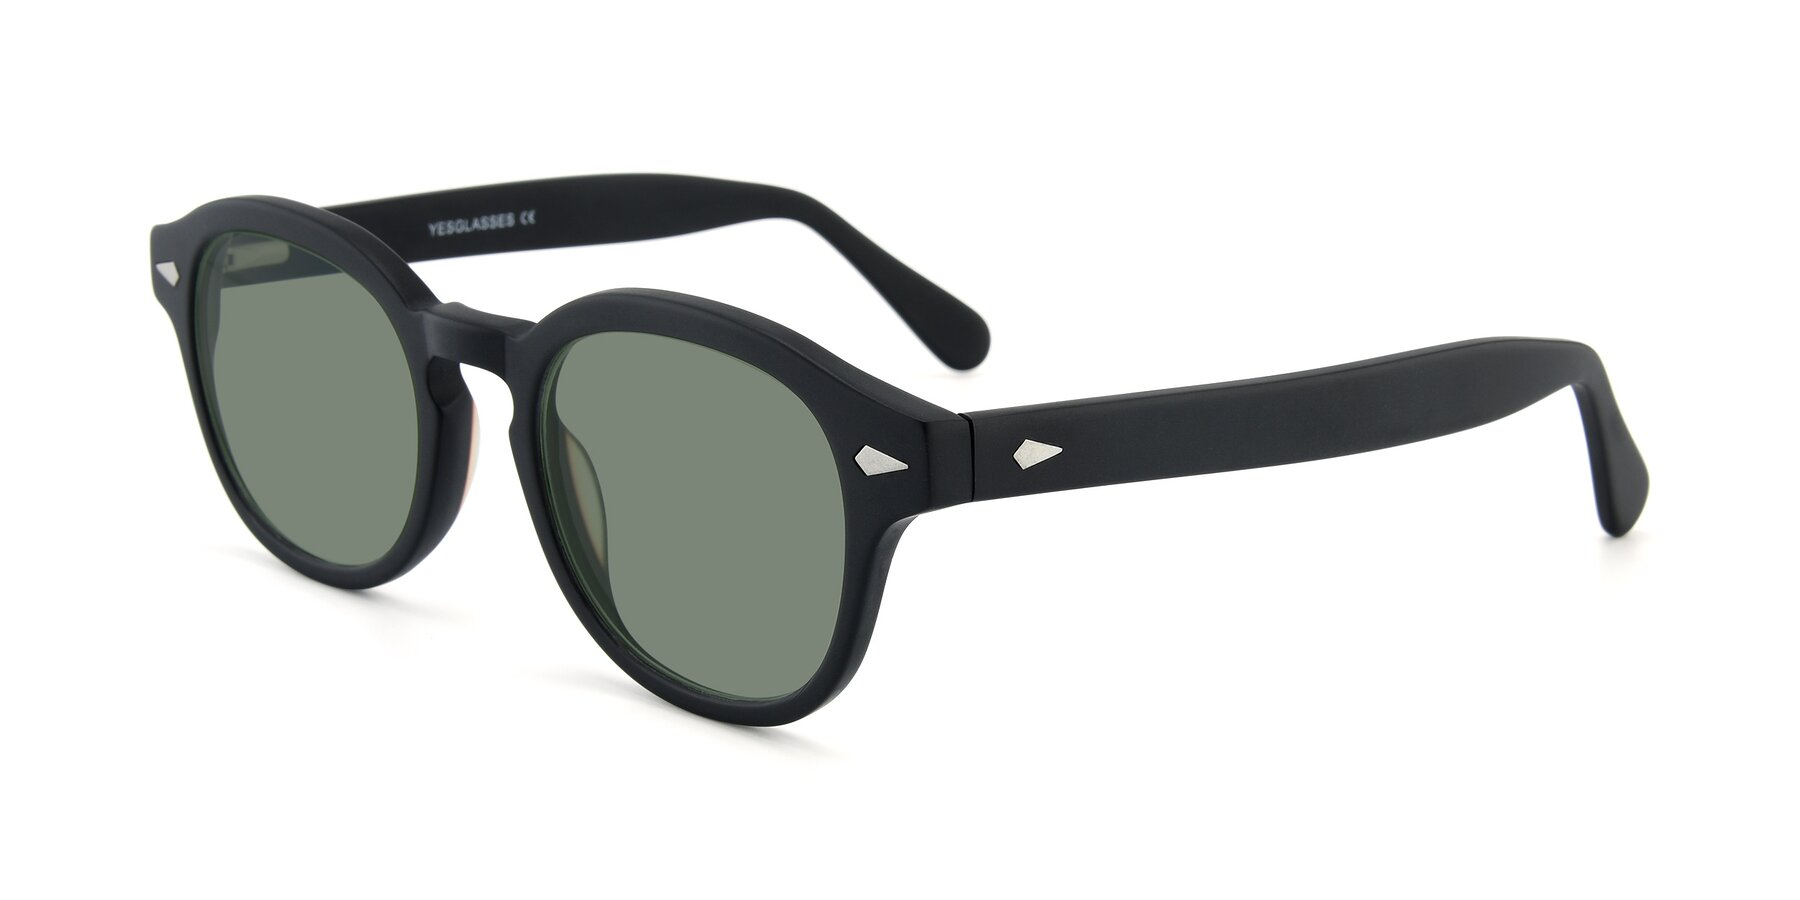 Angle of SR1609 in Matte Black with Medium Green Tinted Lenses